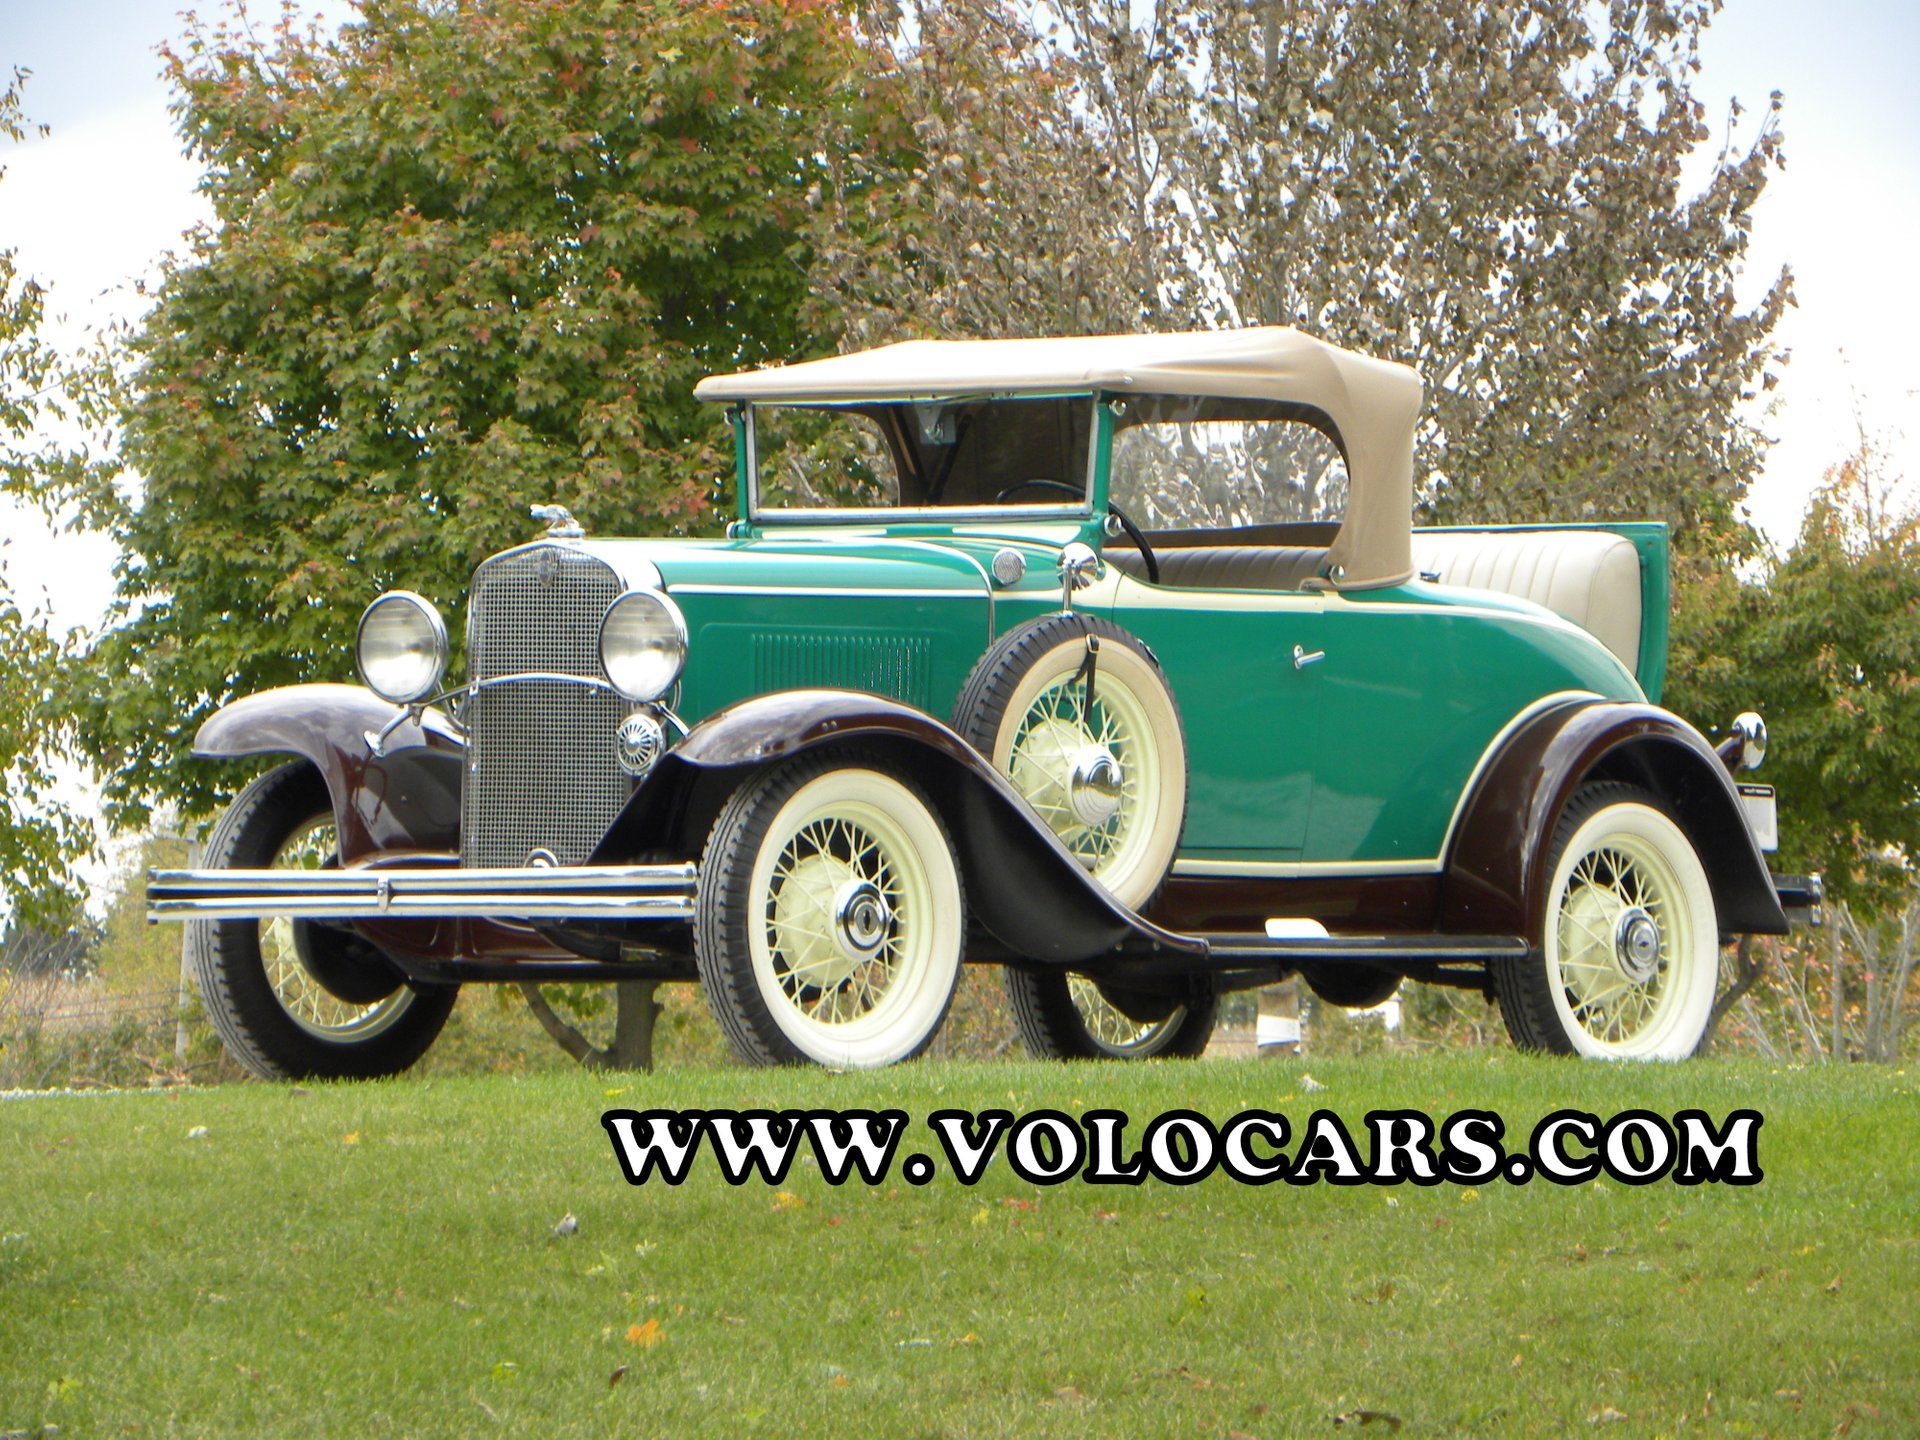 1931 chevrolet independence deluxe roadster series ae